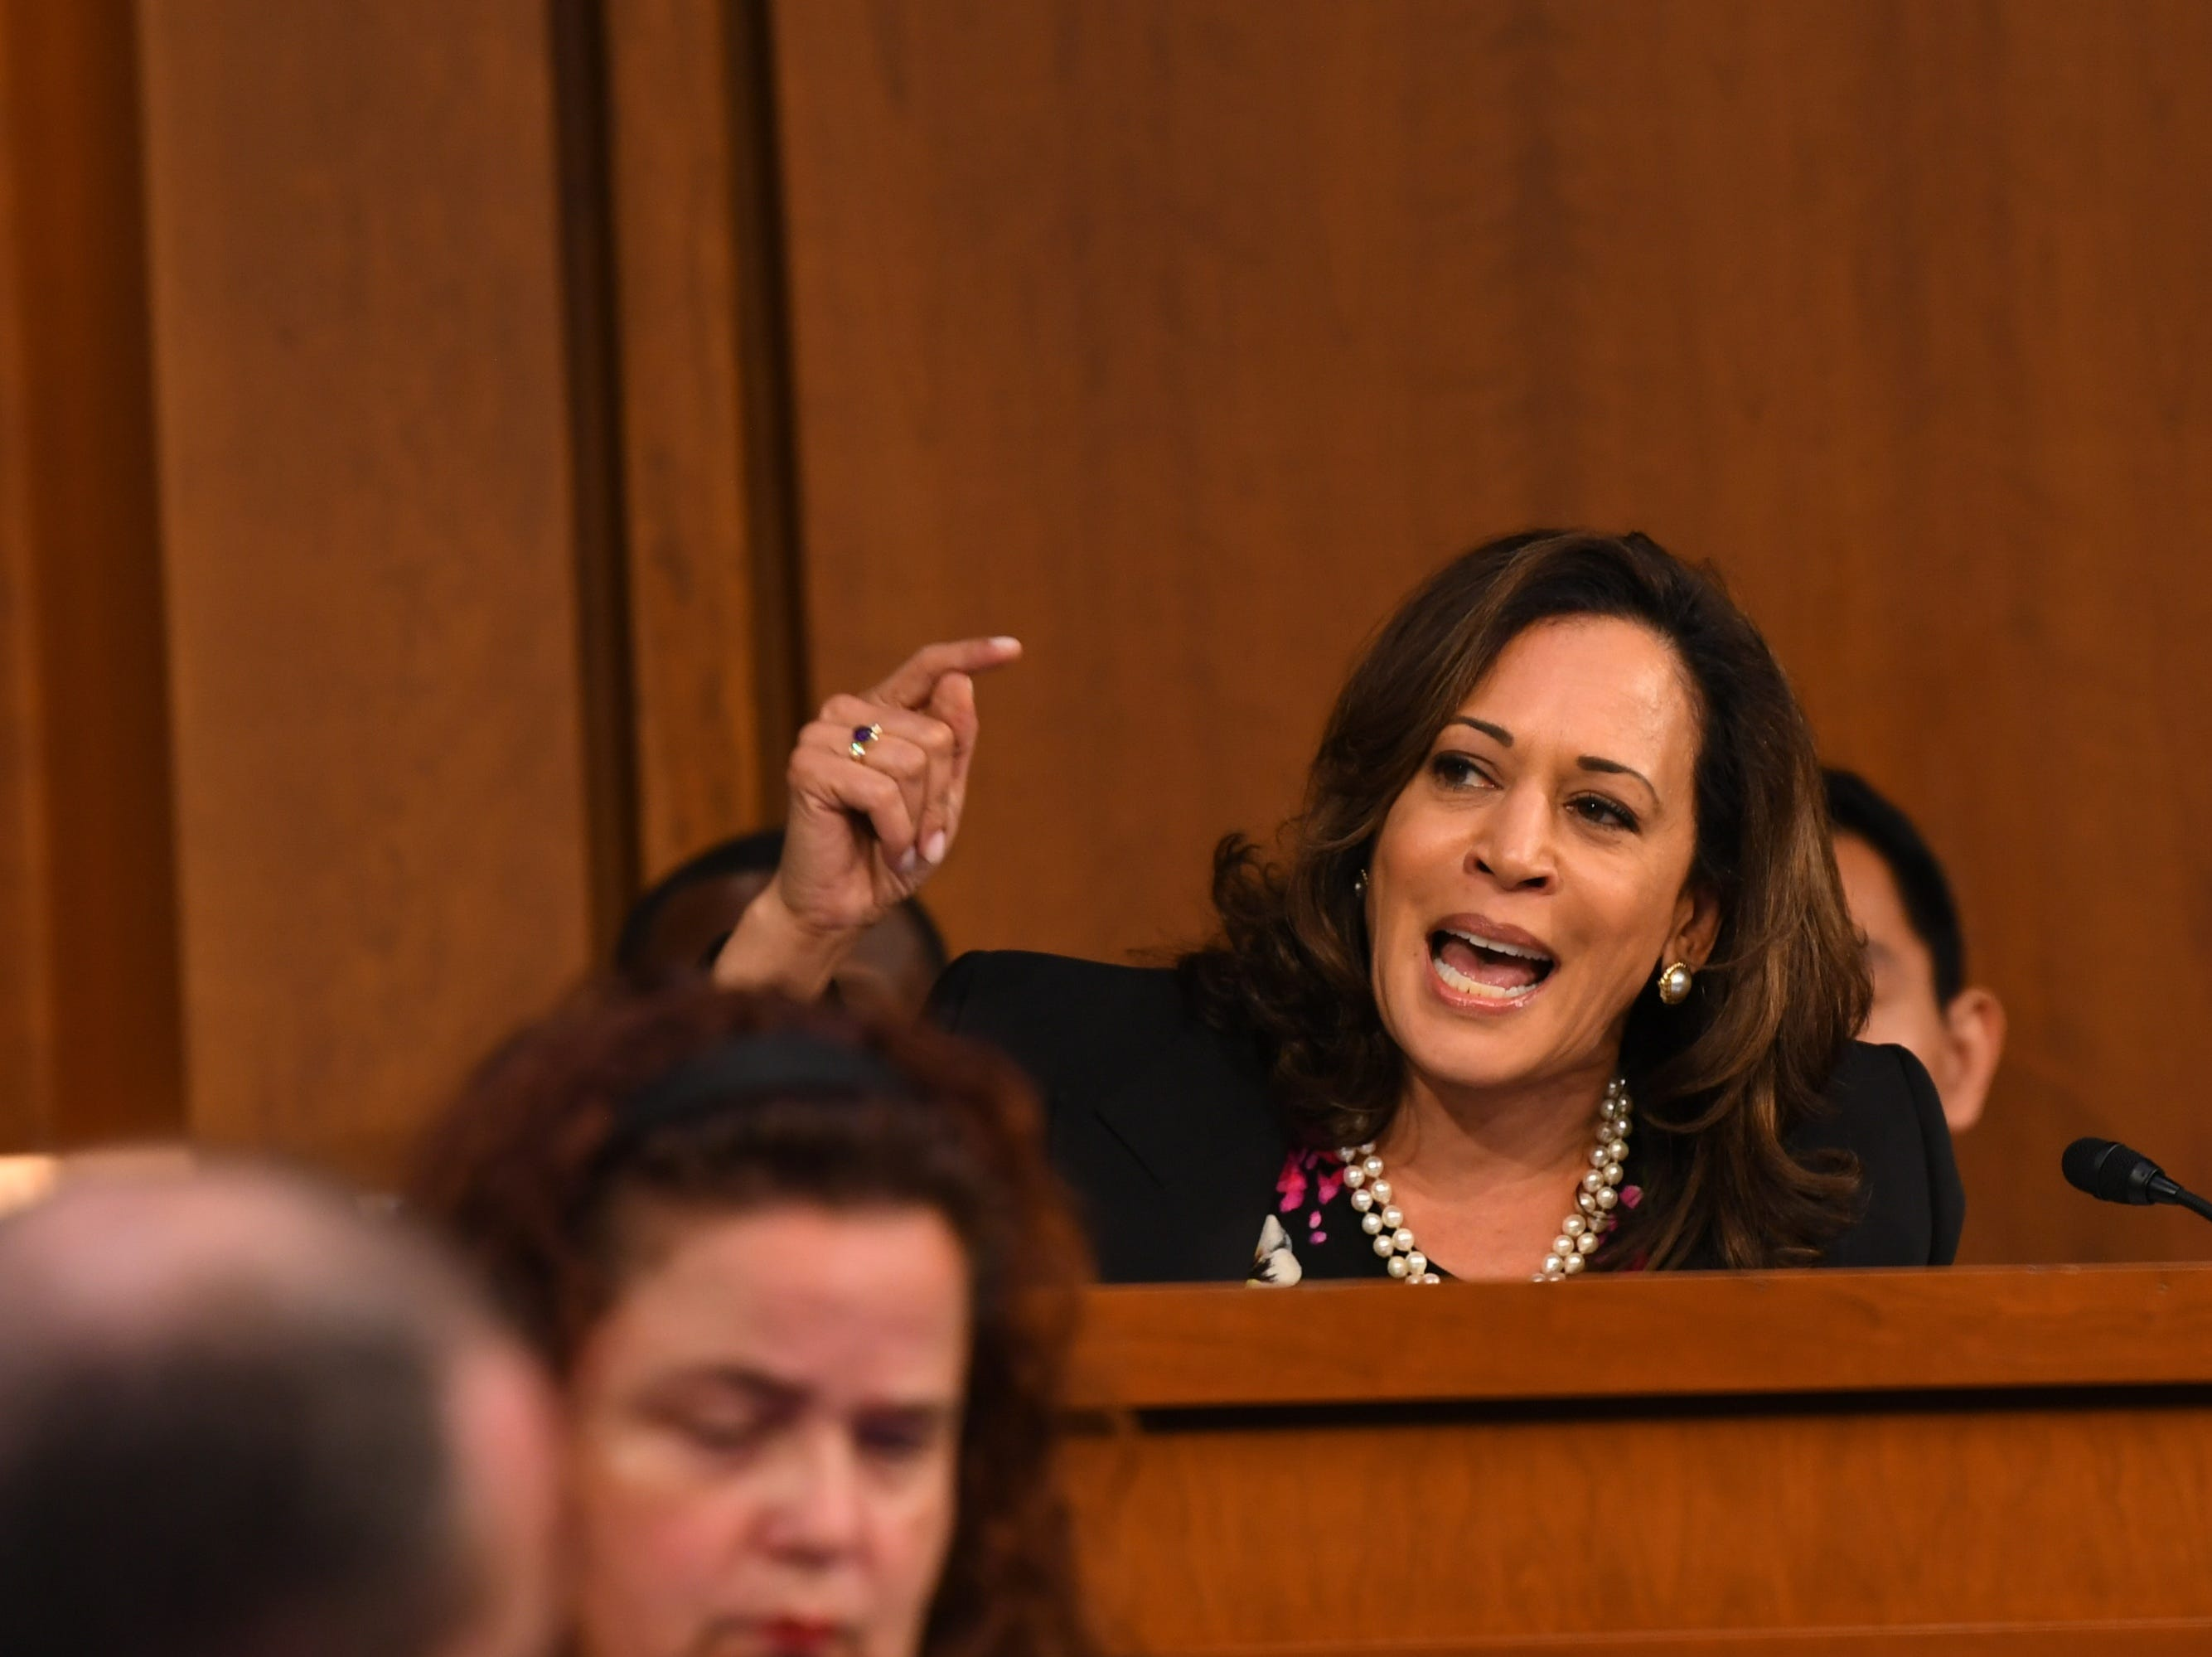 9/4/18 10:40:16 AM -- Washington, DC, U.S.A  - Sen. Kamala Harris (D-Calif.) speaks during the hearing for Supreme Court Associate Justice nominee Brett Kavanaugh on Sept. 4, 2018 in Washington. Kavanaugh was nominated by President Donald Trump to replace Justice Anthony Kennedy, who retired from the Supreme Court in July.  --    Photo by Jack Gruber, USA TODAY Staff ORG XMIT:  JG 137433 Kavanaugh Confir 9/4/2018 (Via OlyDrop)